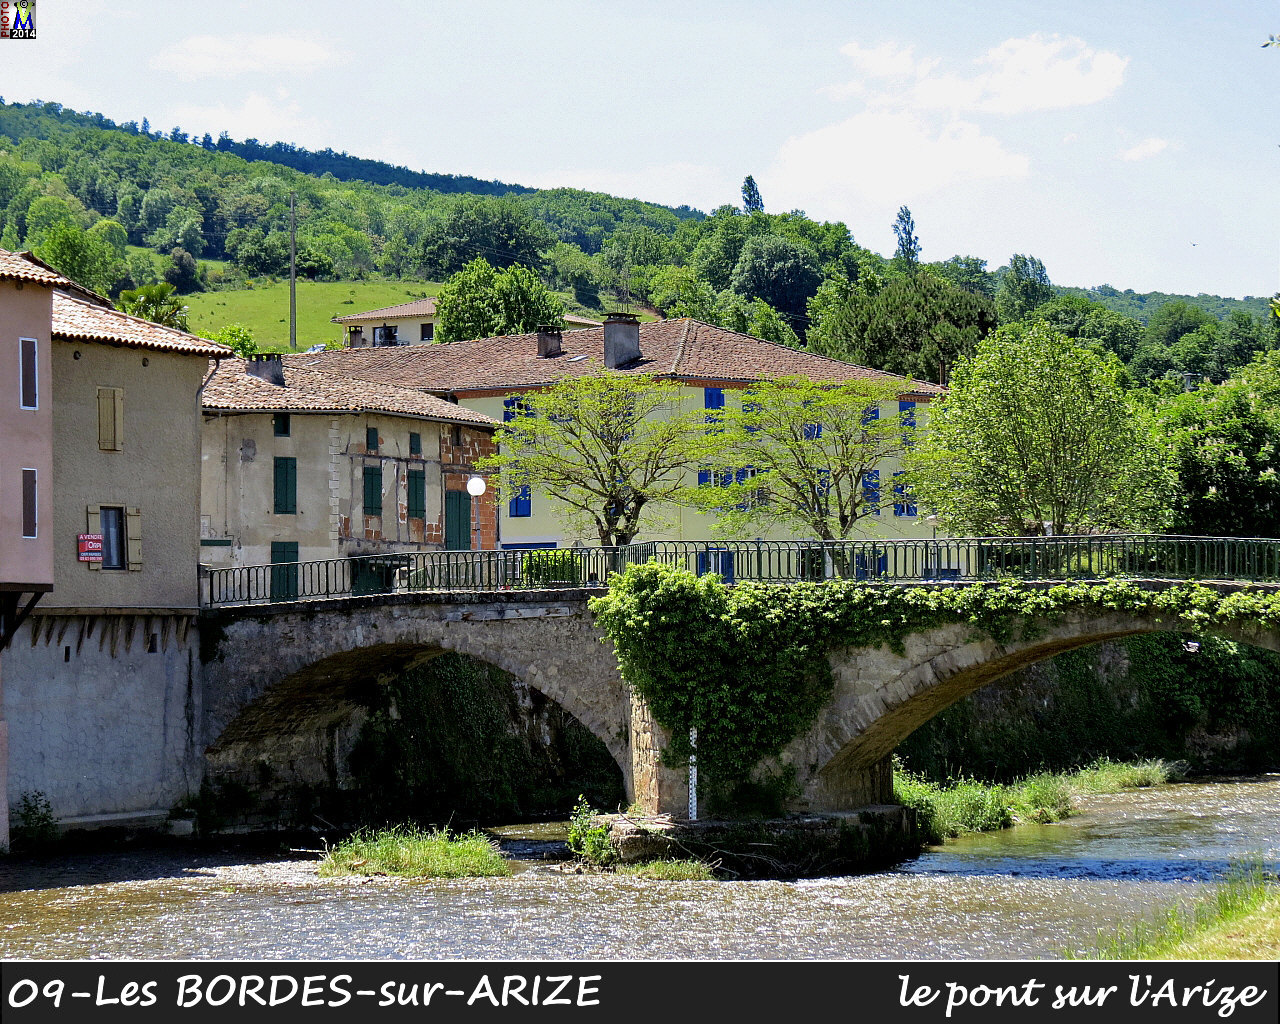 09BORDES-ARIZE_pont_100.jpg